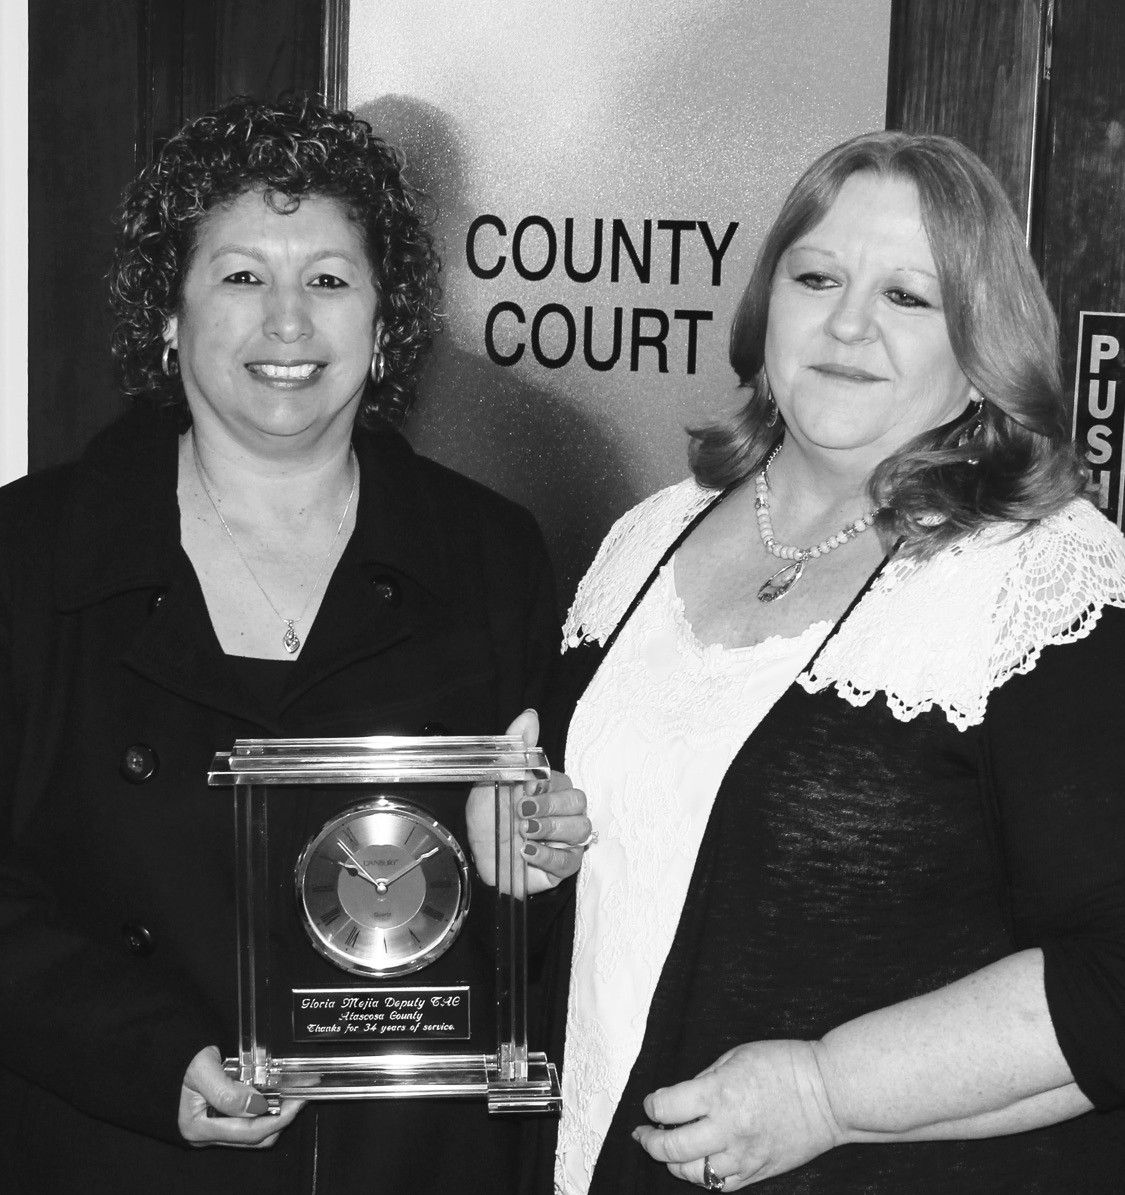 Gloria Mejia, left, receiving retirement plaque from Atascosa County Tax Assessor-Collector Loretta Holley. Gloria had served as a Deputy Tax Assessor-Collector for a total of 34 years. She served in that position from November 7, 1977 to September 30, 1989 (12 years) and later from February 25, 1991 to December 31, 2013.